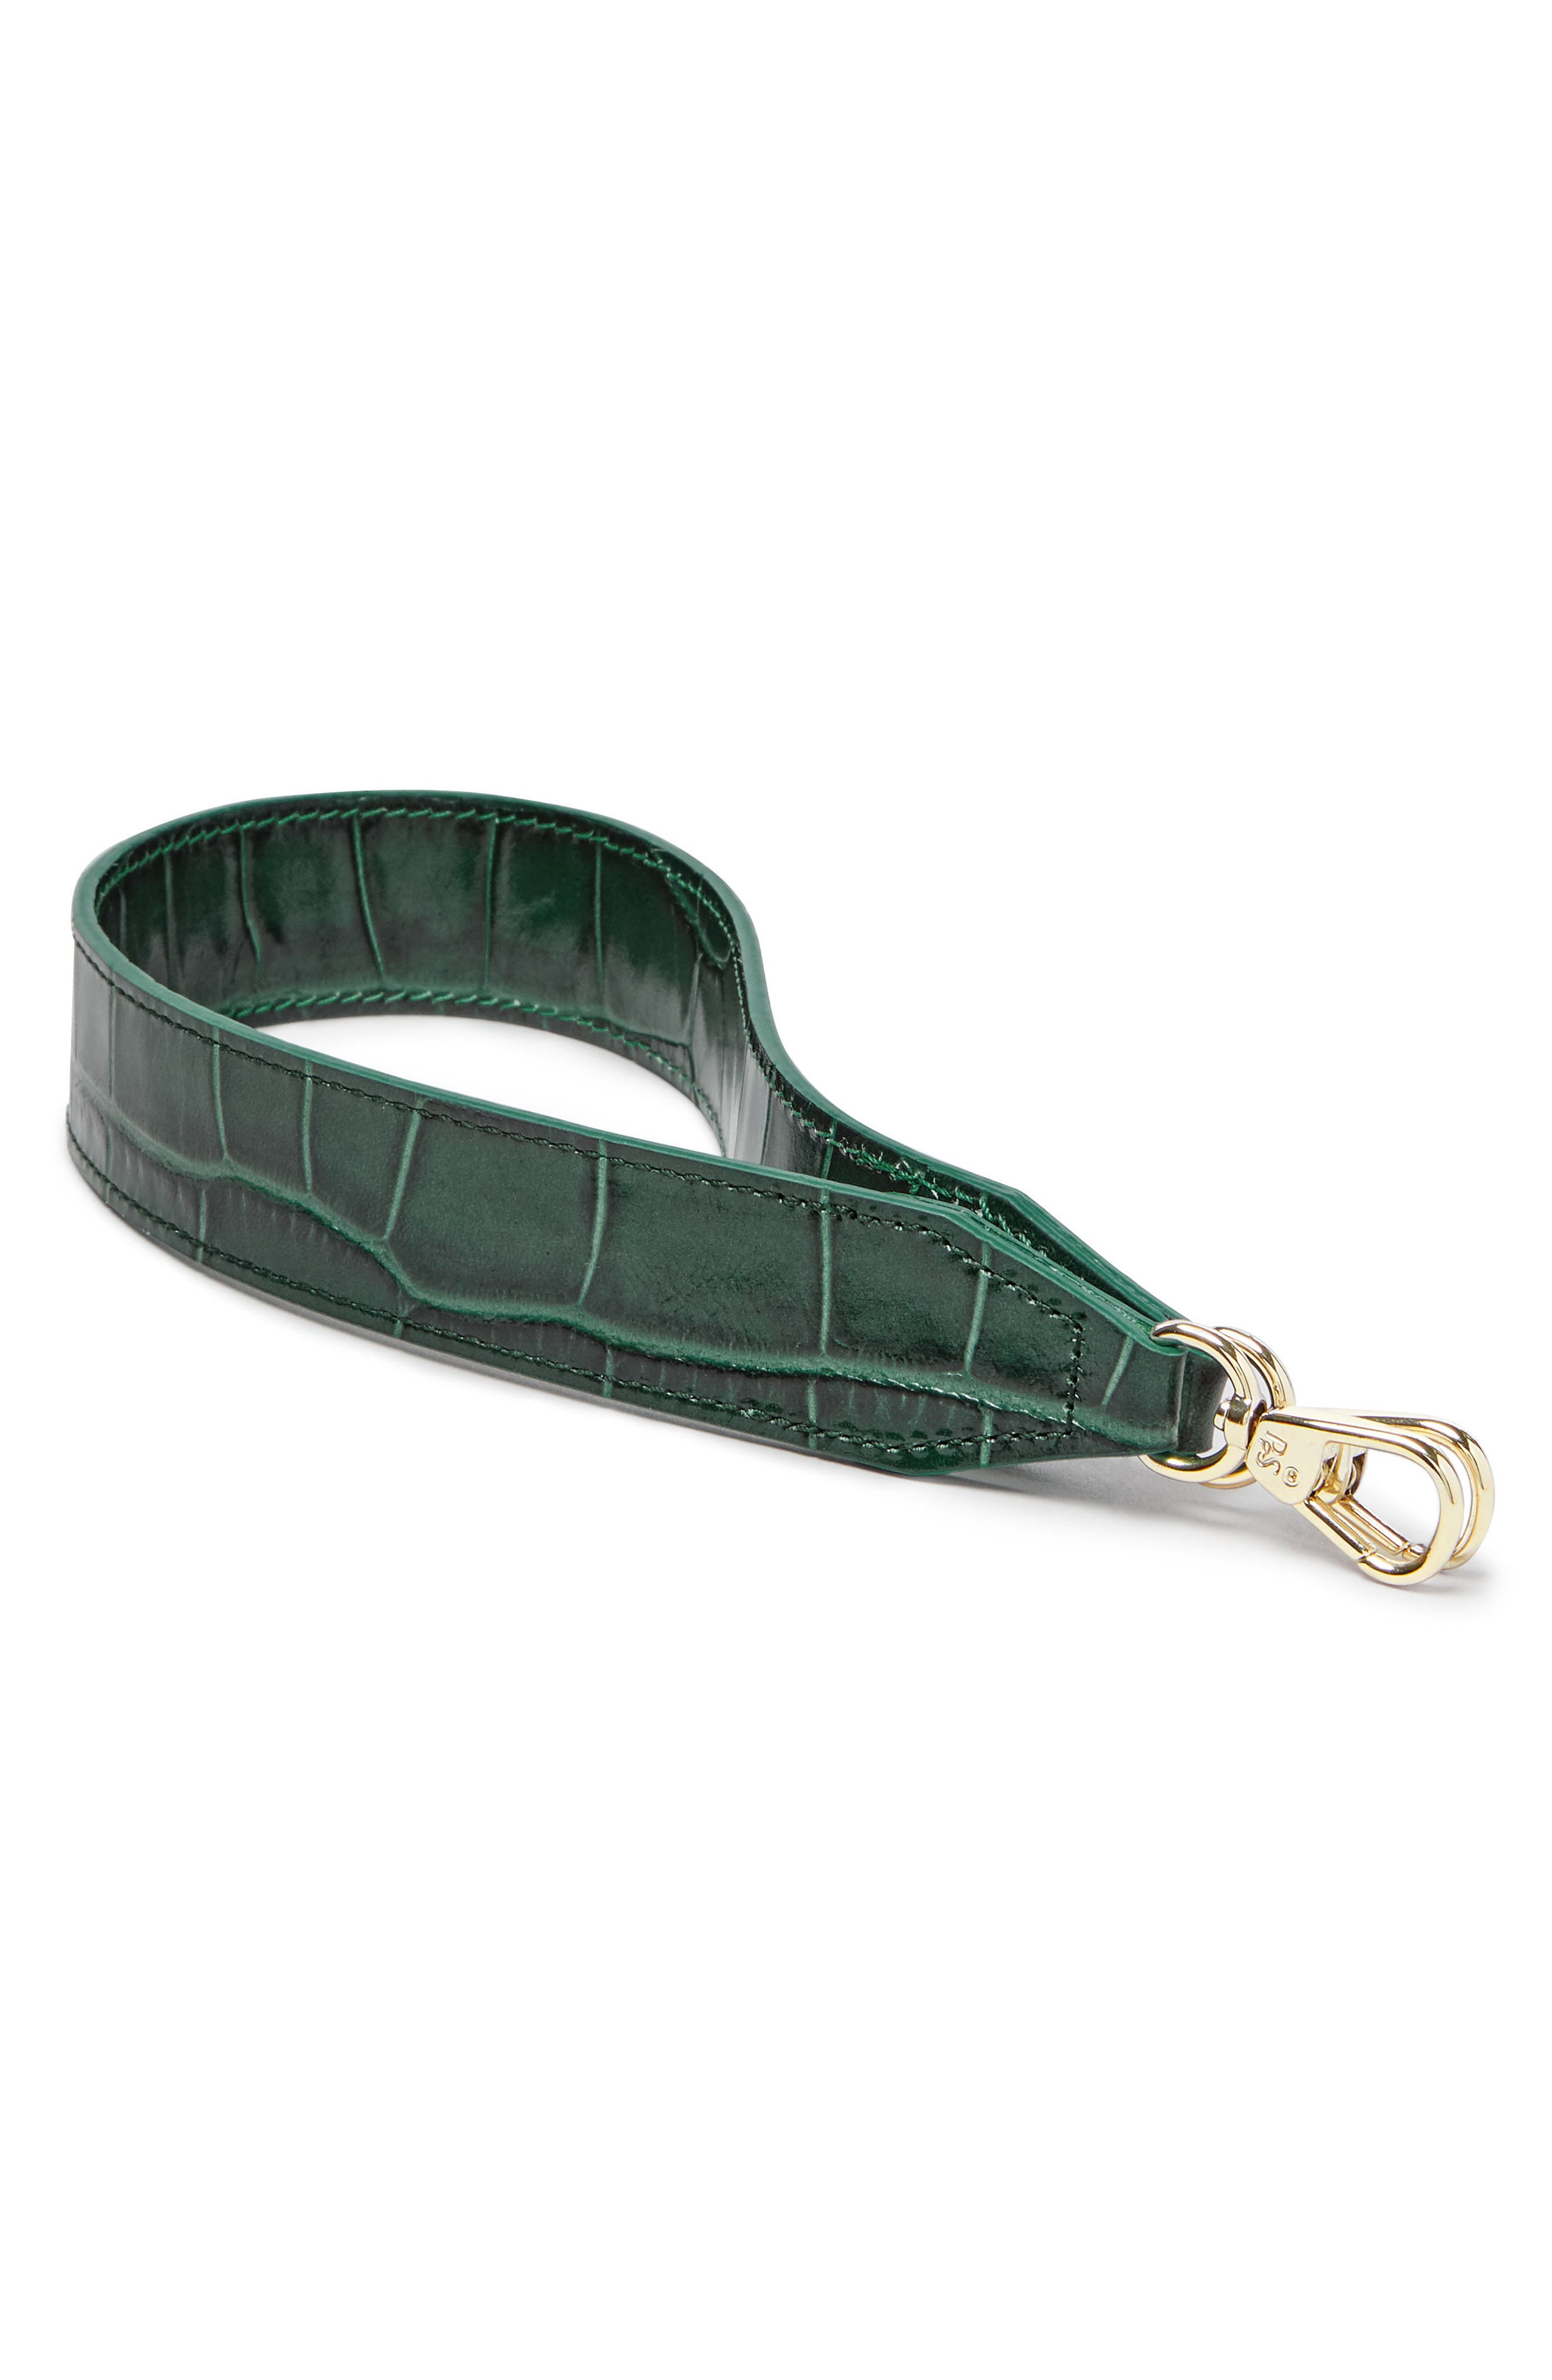 Croc Embossed Short Wide Strap,                         Main,                         color, Emerald